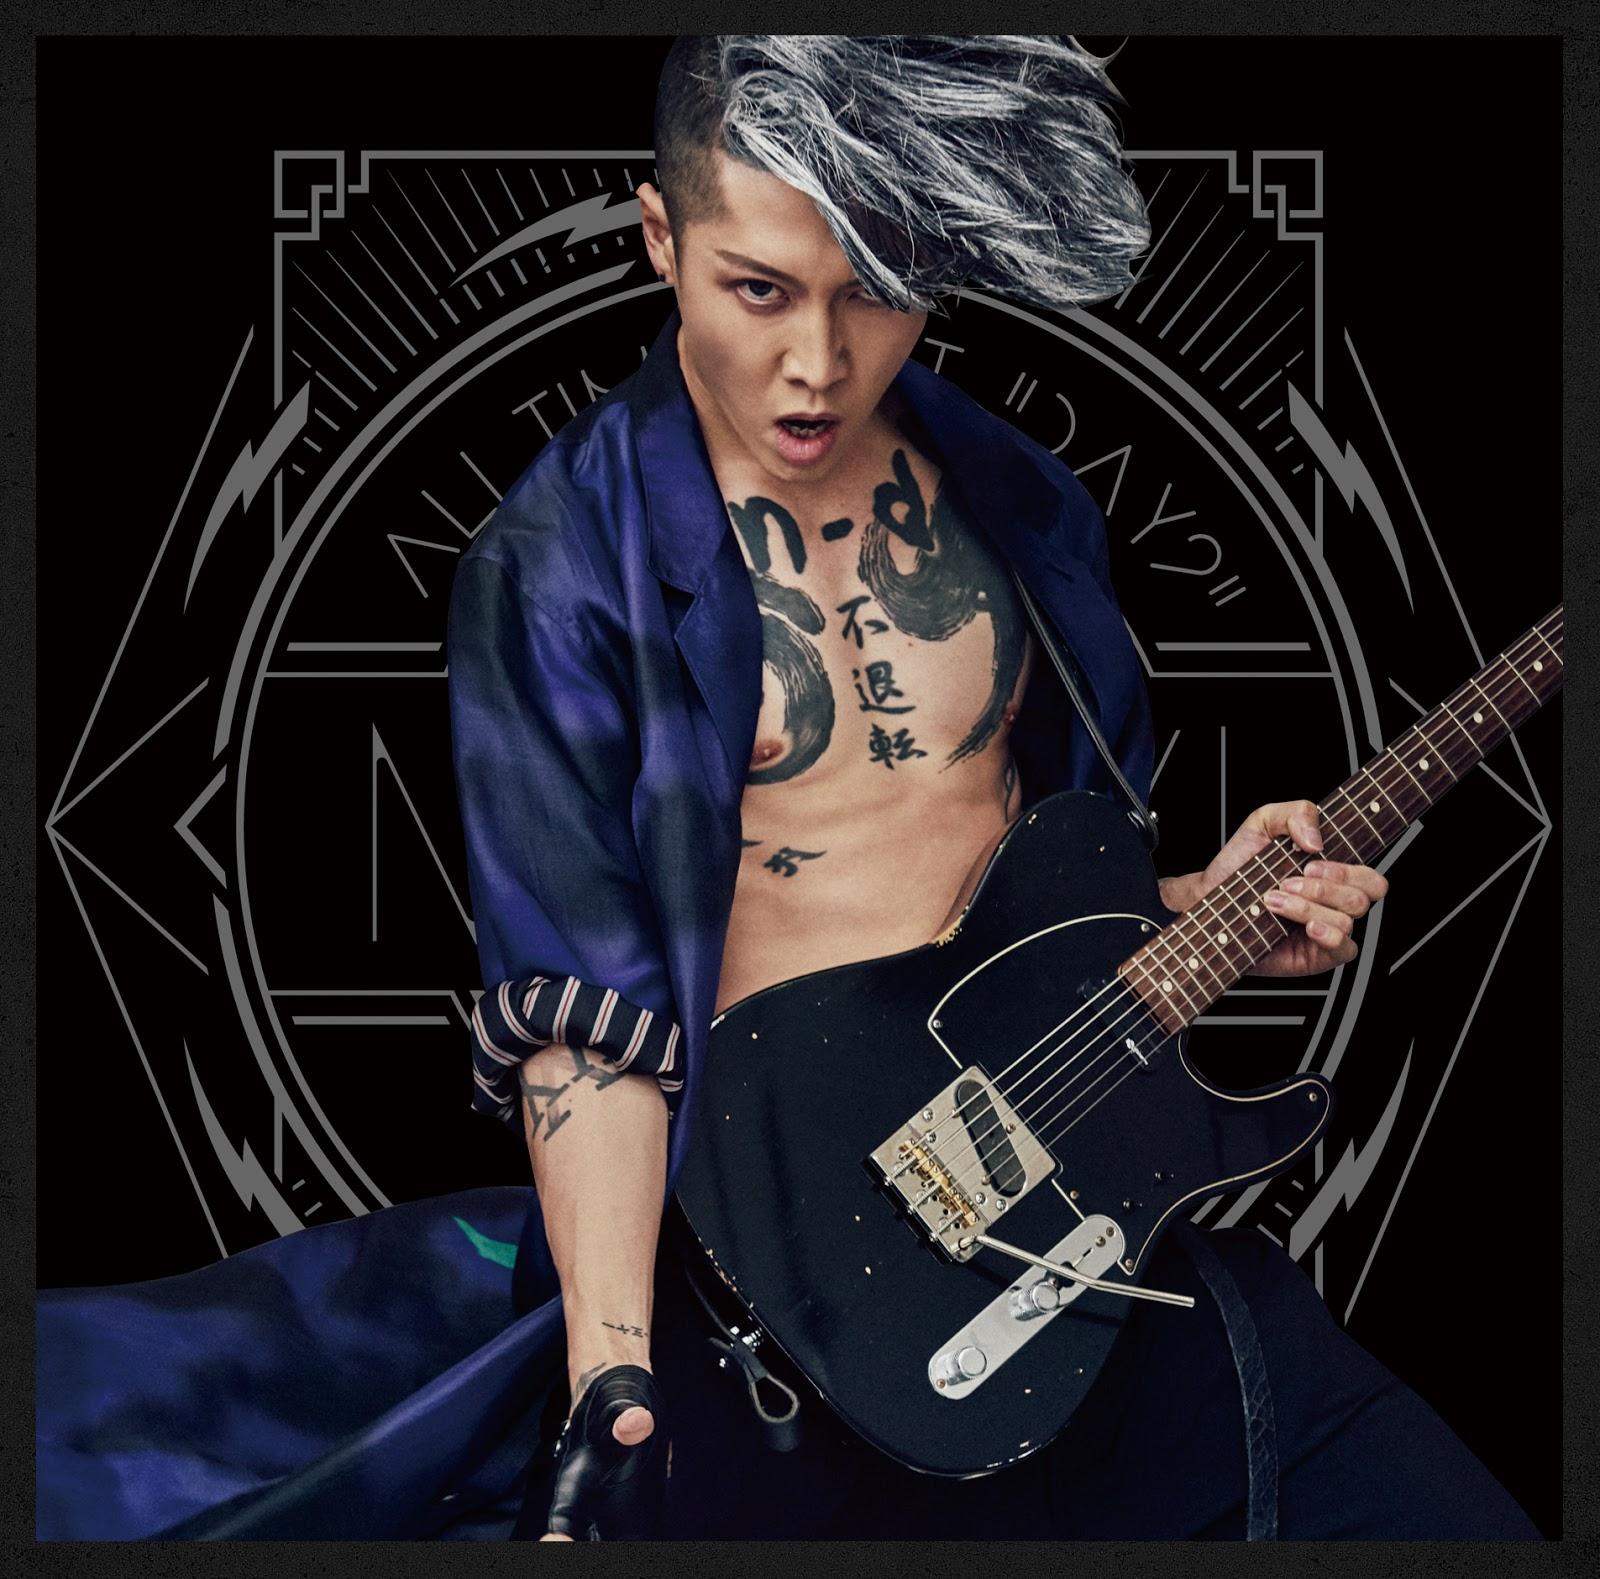 Miyavi Best Album And Live Dvd Tour Dates For North America And